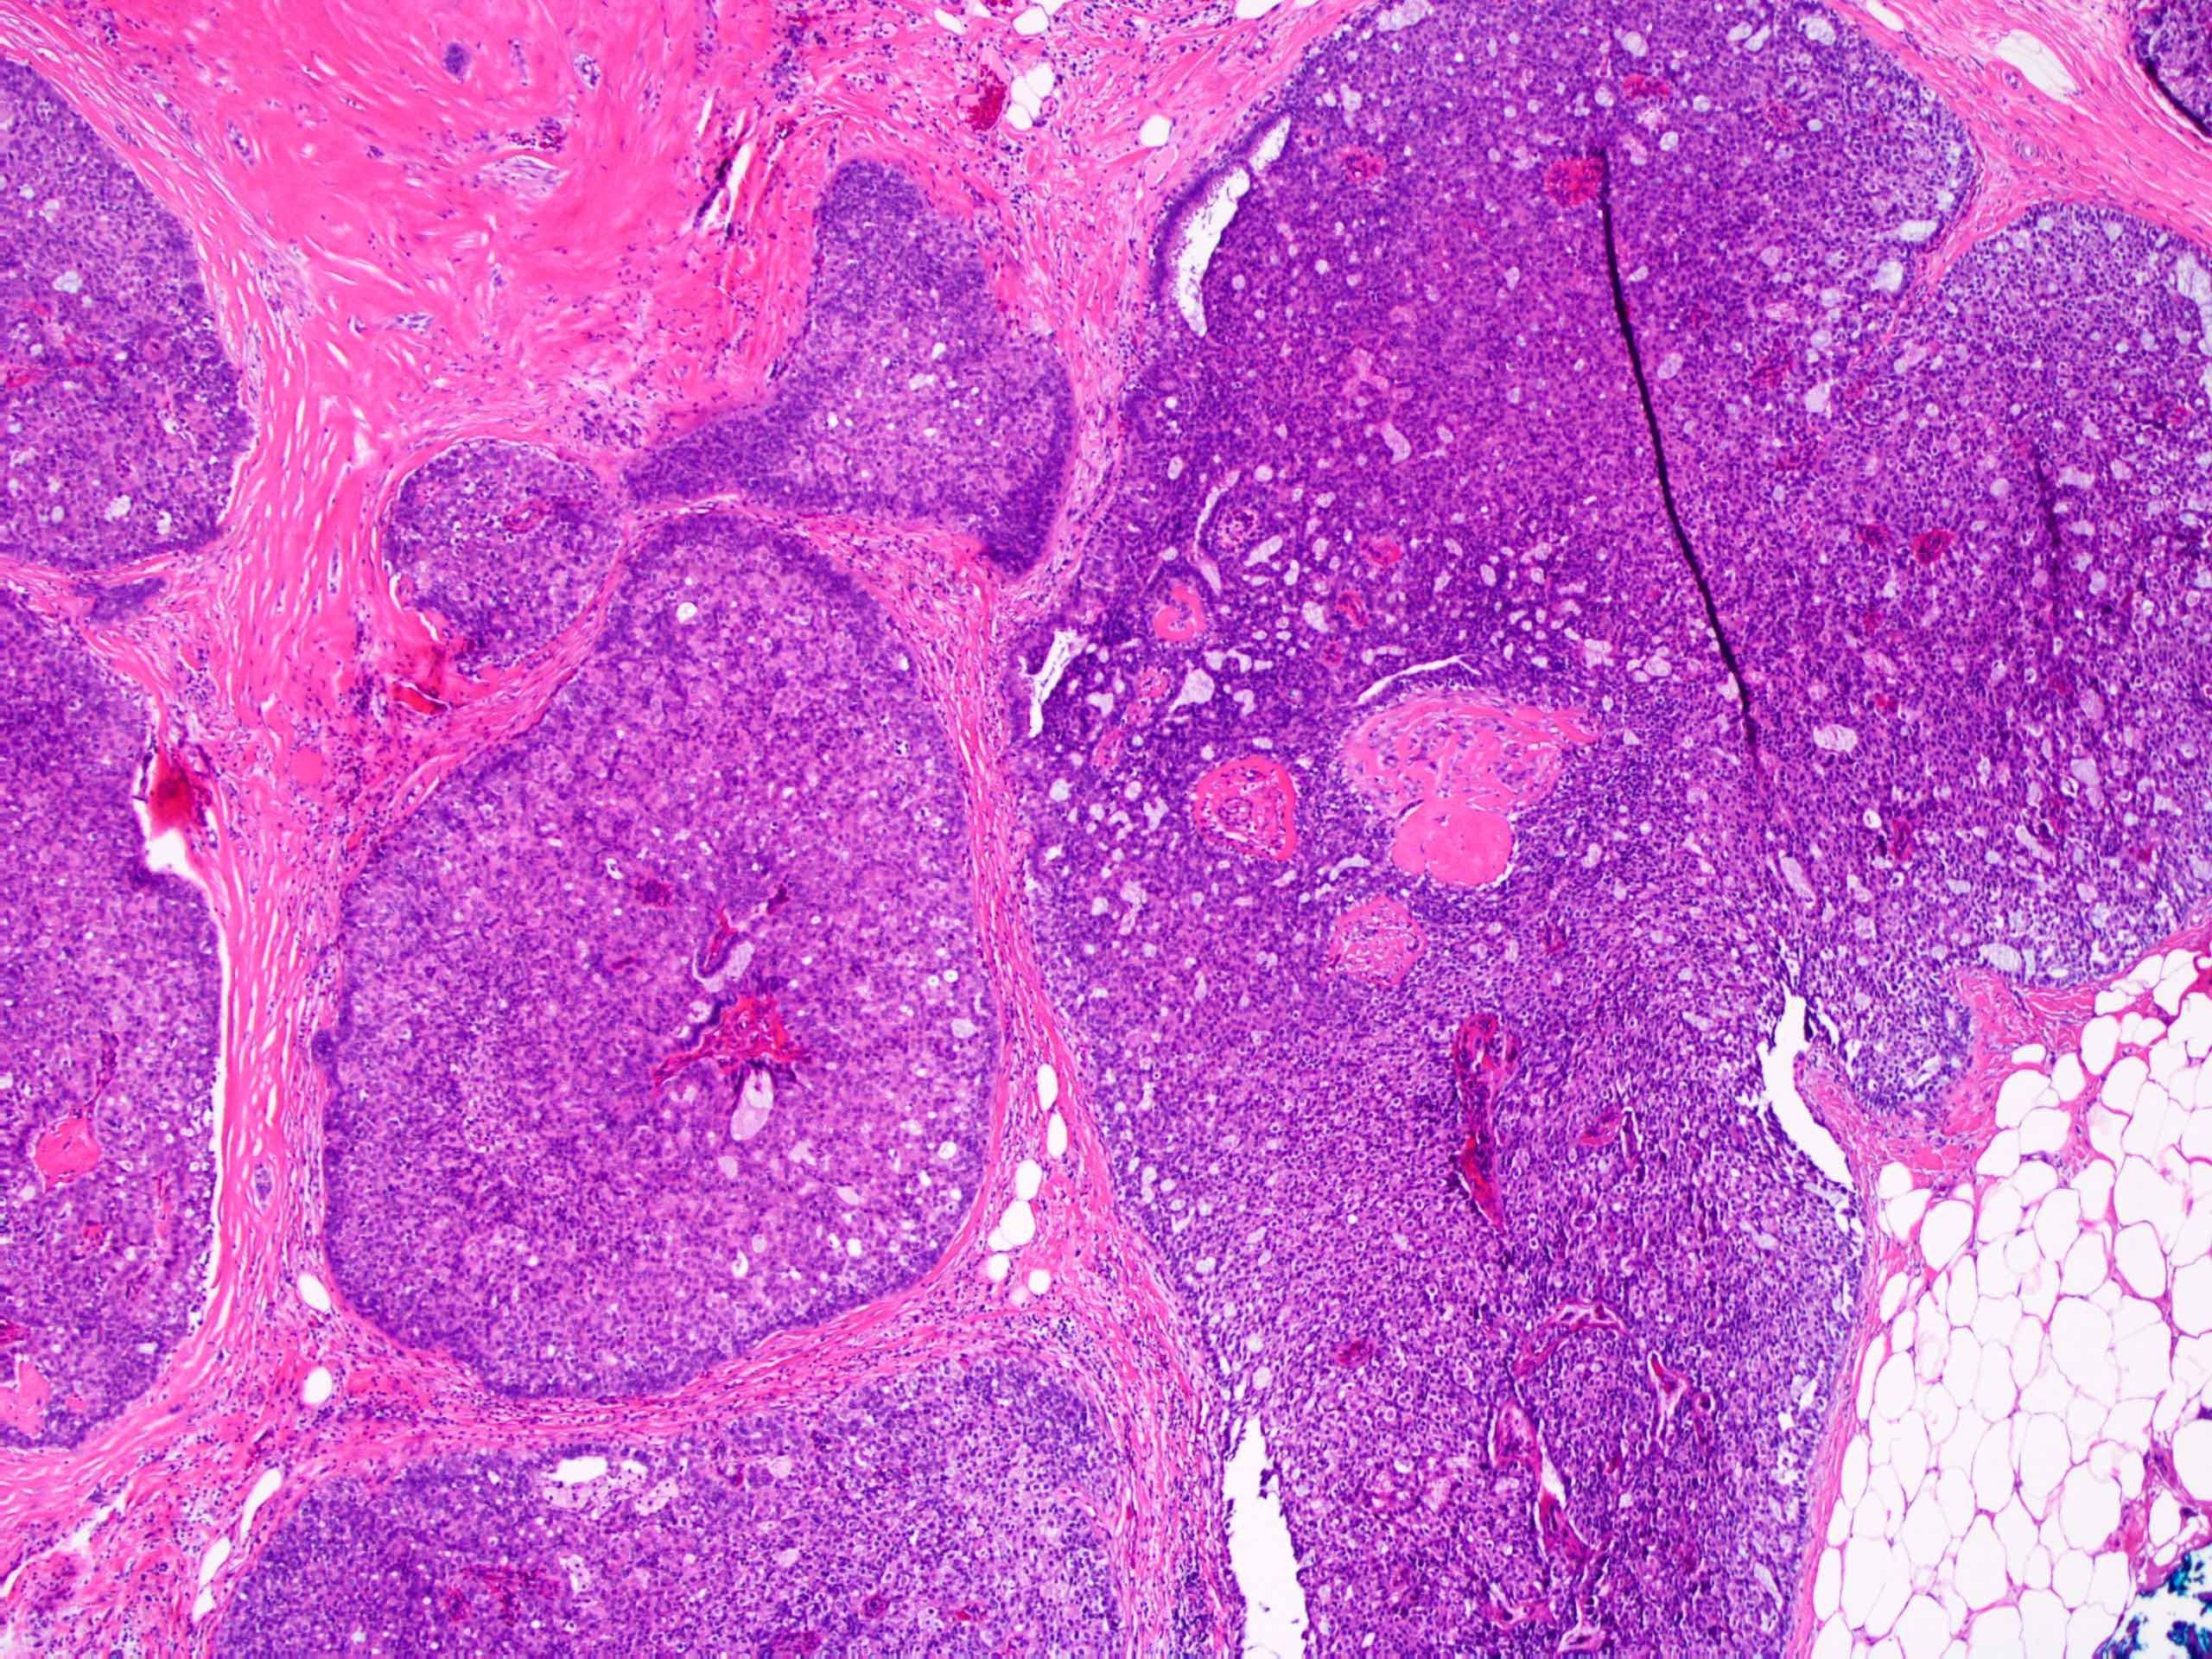 Intraductal papilloma pathology outlines Intraductal papilloma of breast pathology outlines